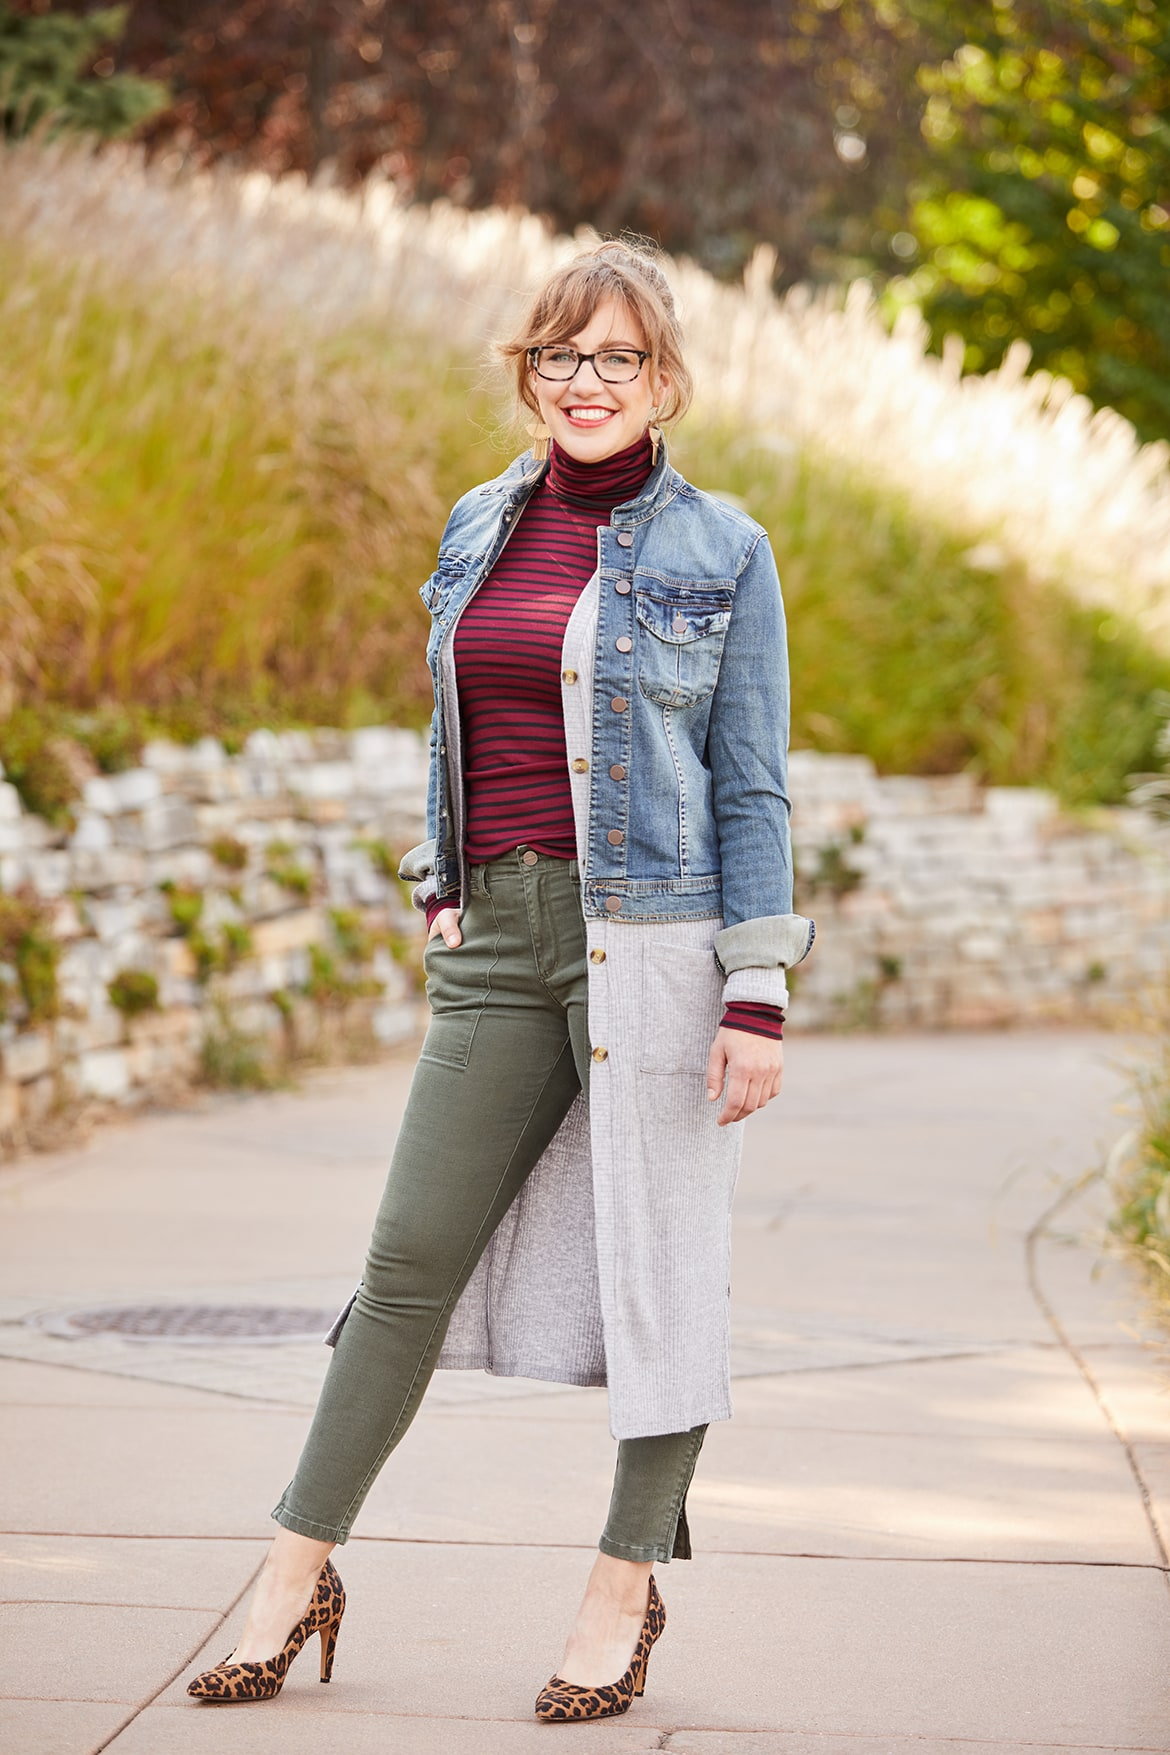 Duster length cardigan layered with jean jacket